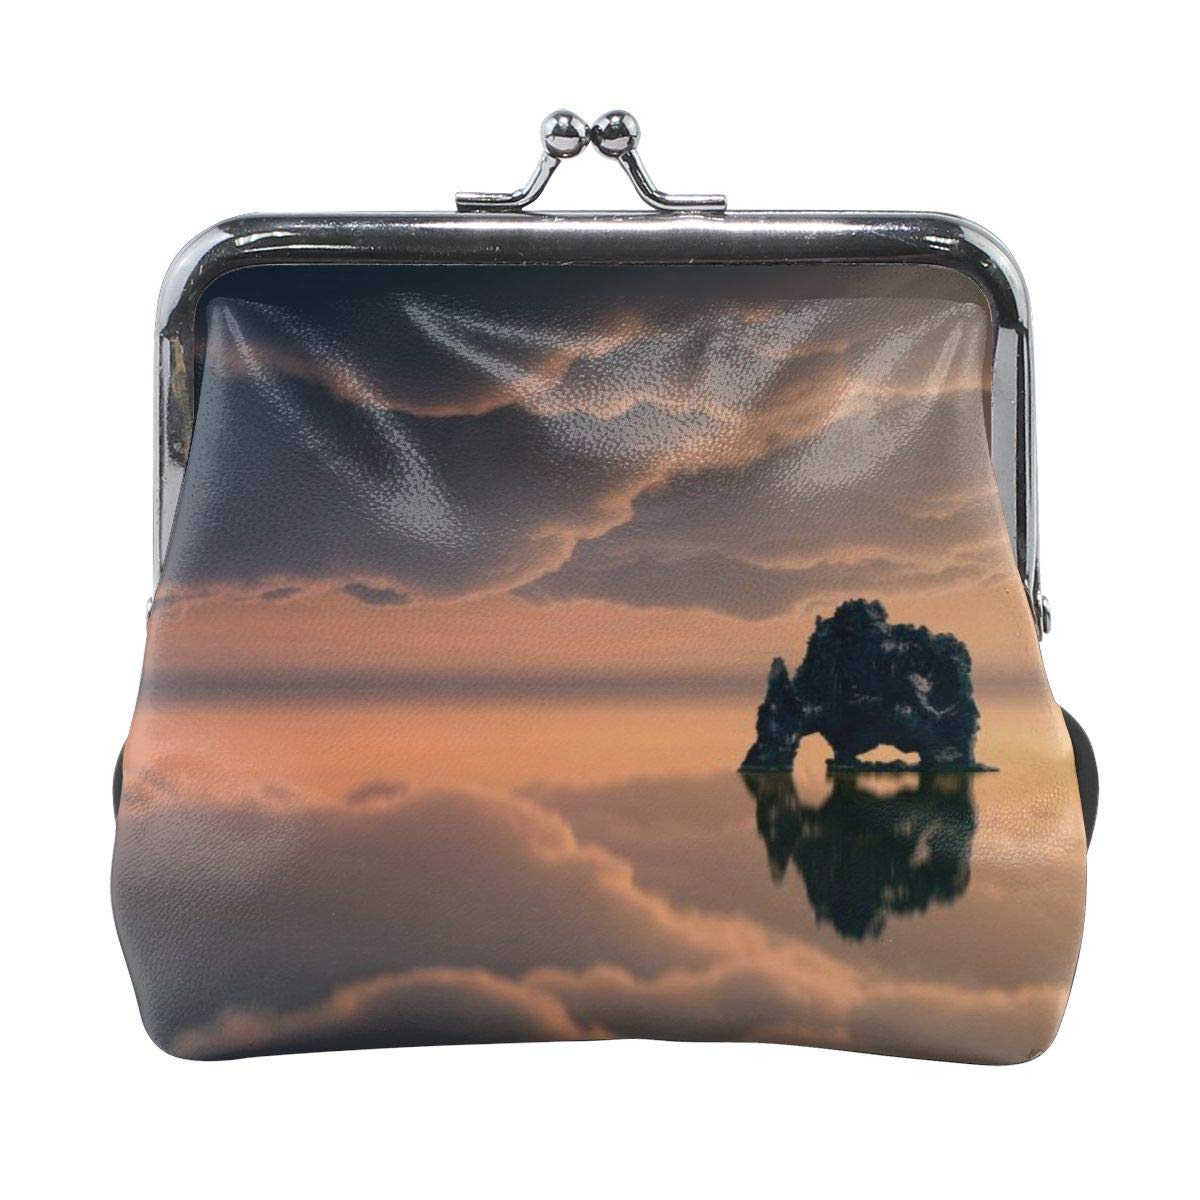 Poream Most Beautiful Waterscapes Wallpaper Personalized Retro Leather Cute Classic Floral Coin Purse Clutch Pouch Wallet For Girls And Womens